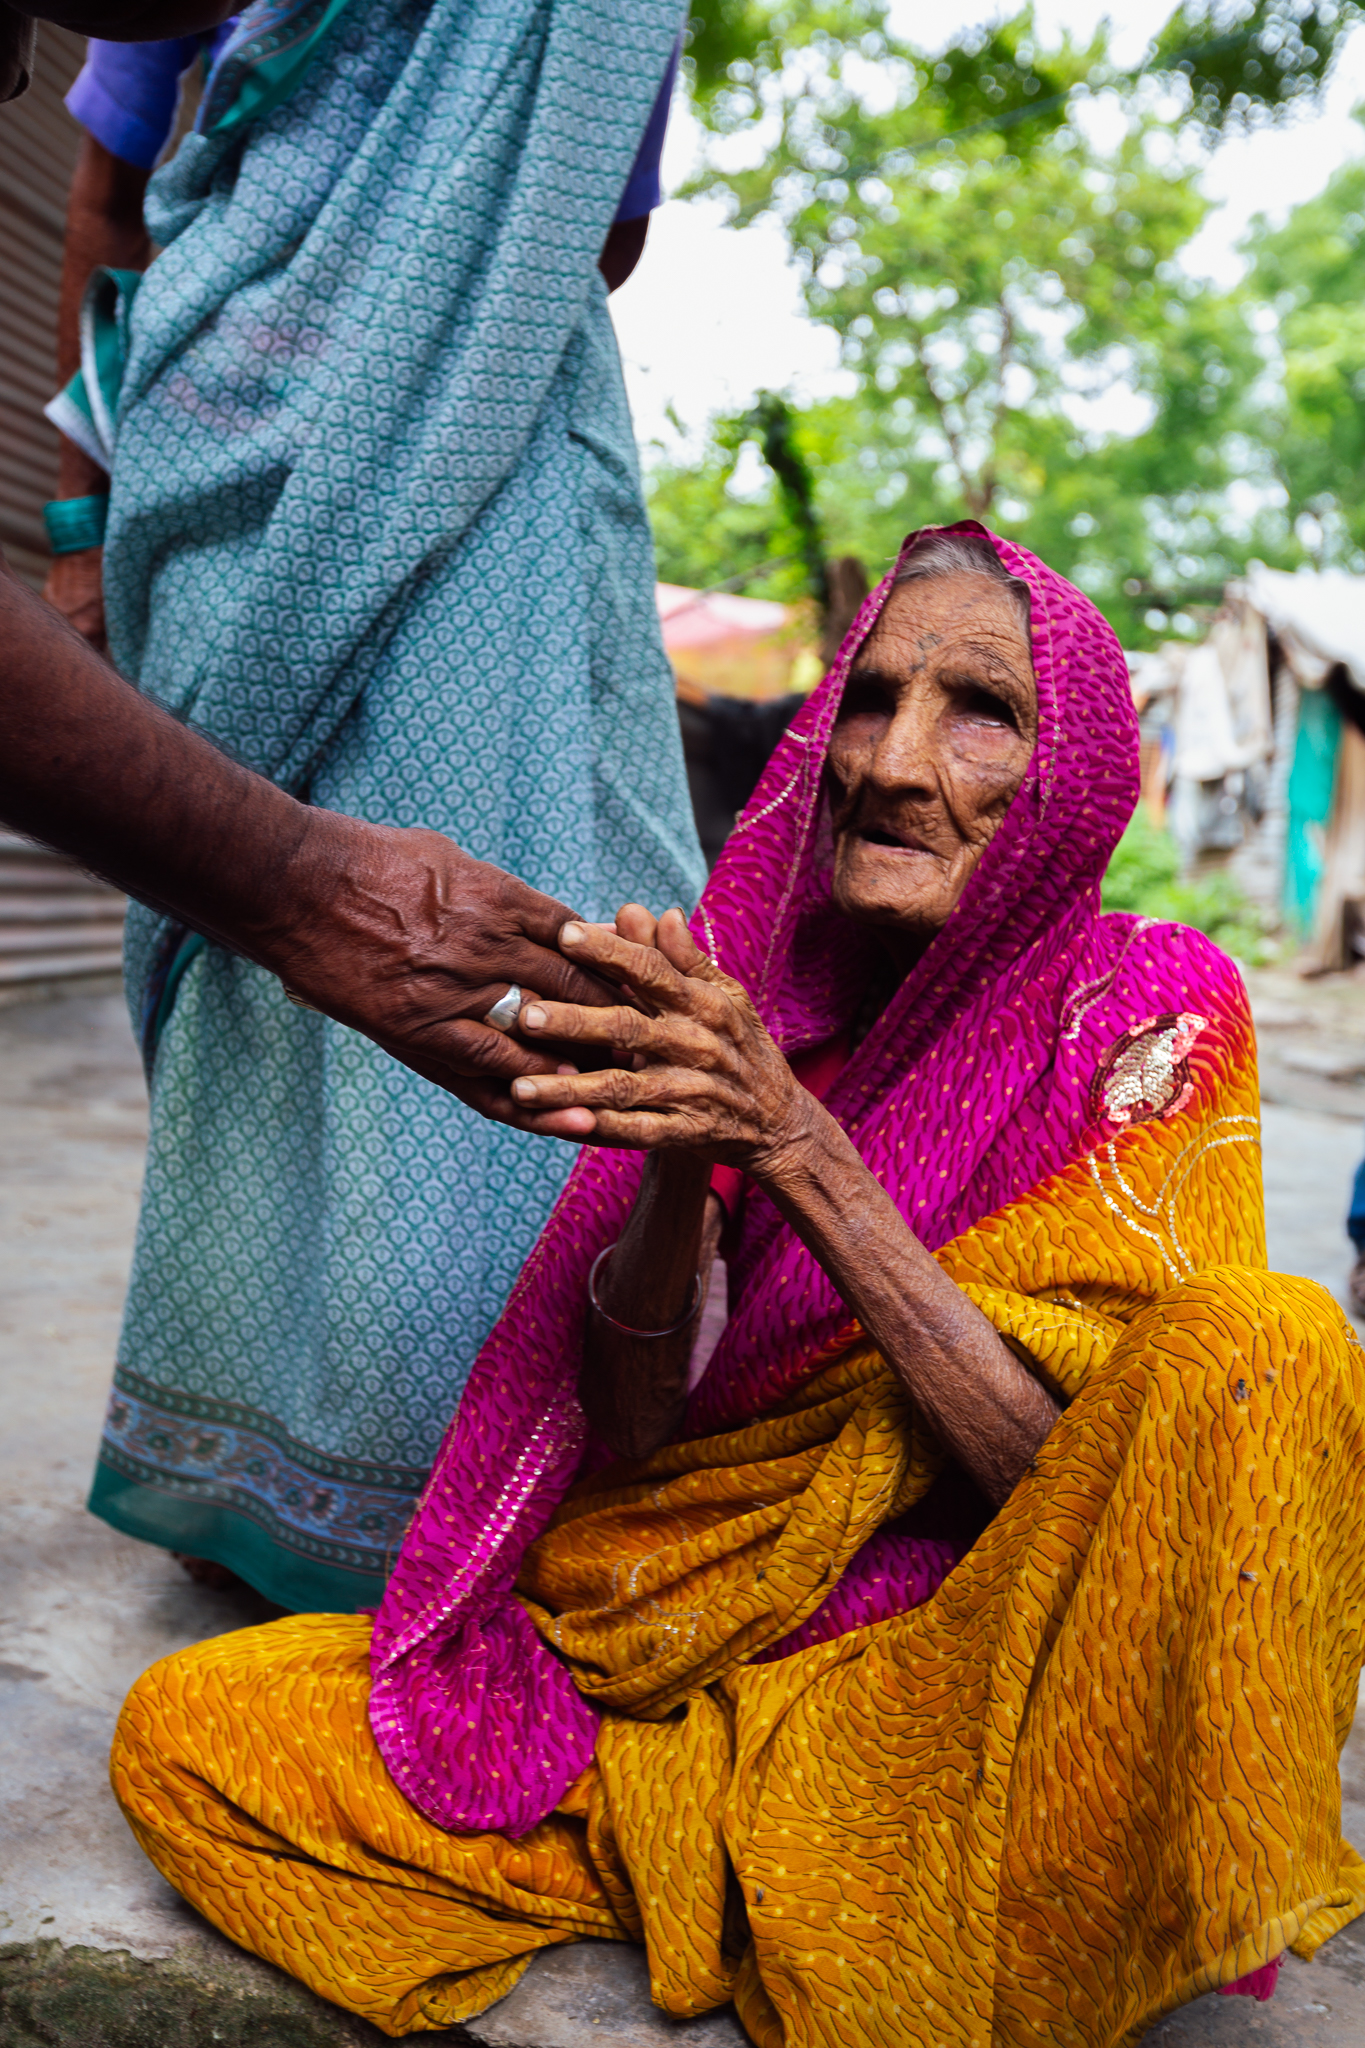 An older blind lady with leprosy at the leper colony I visited